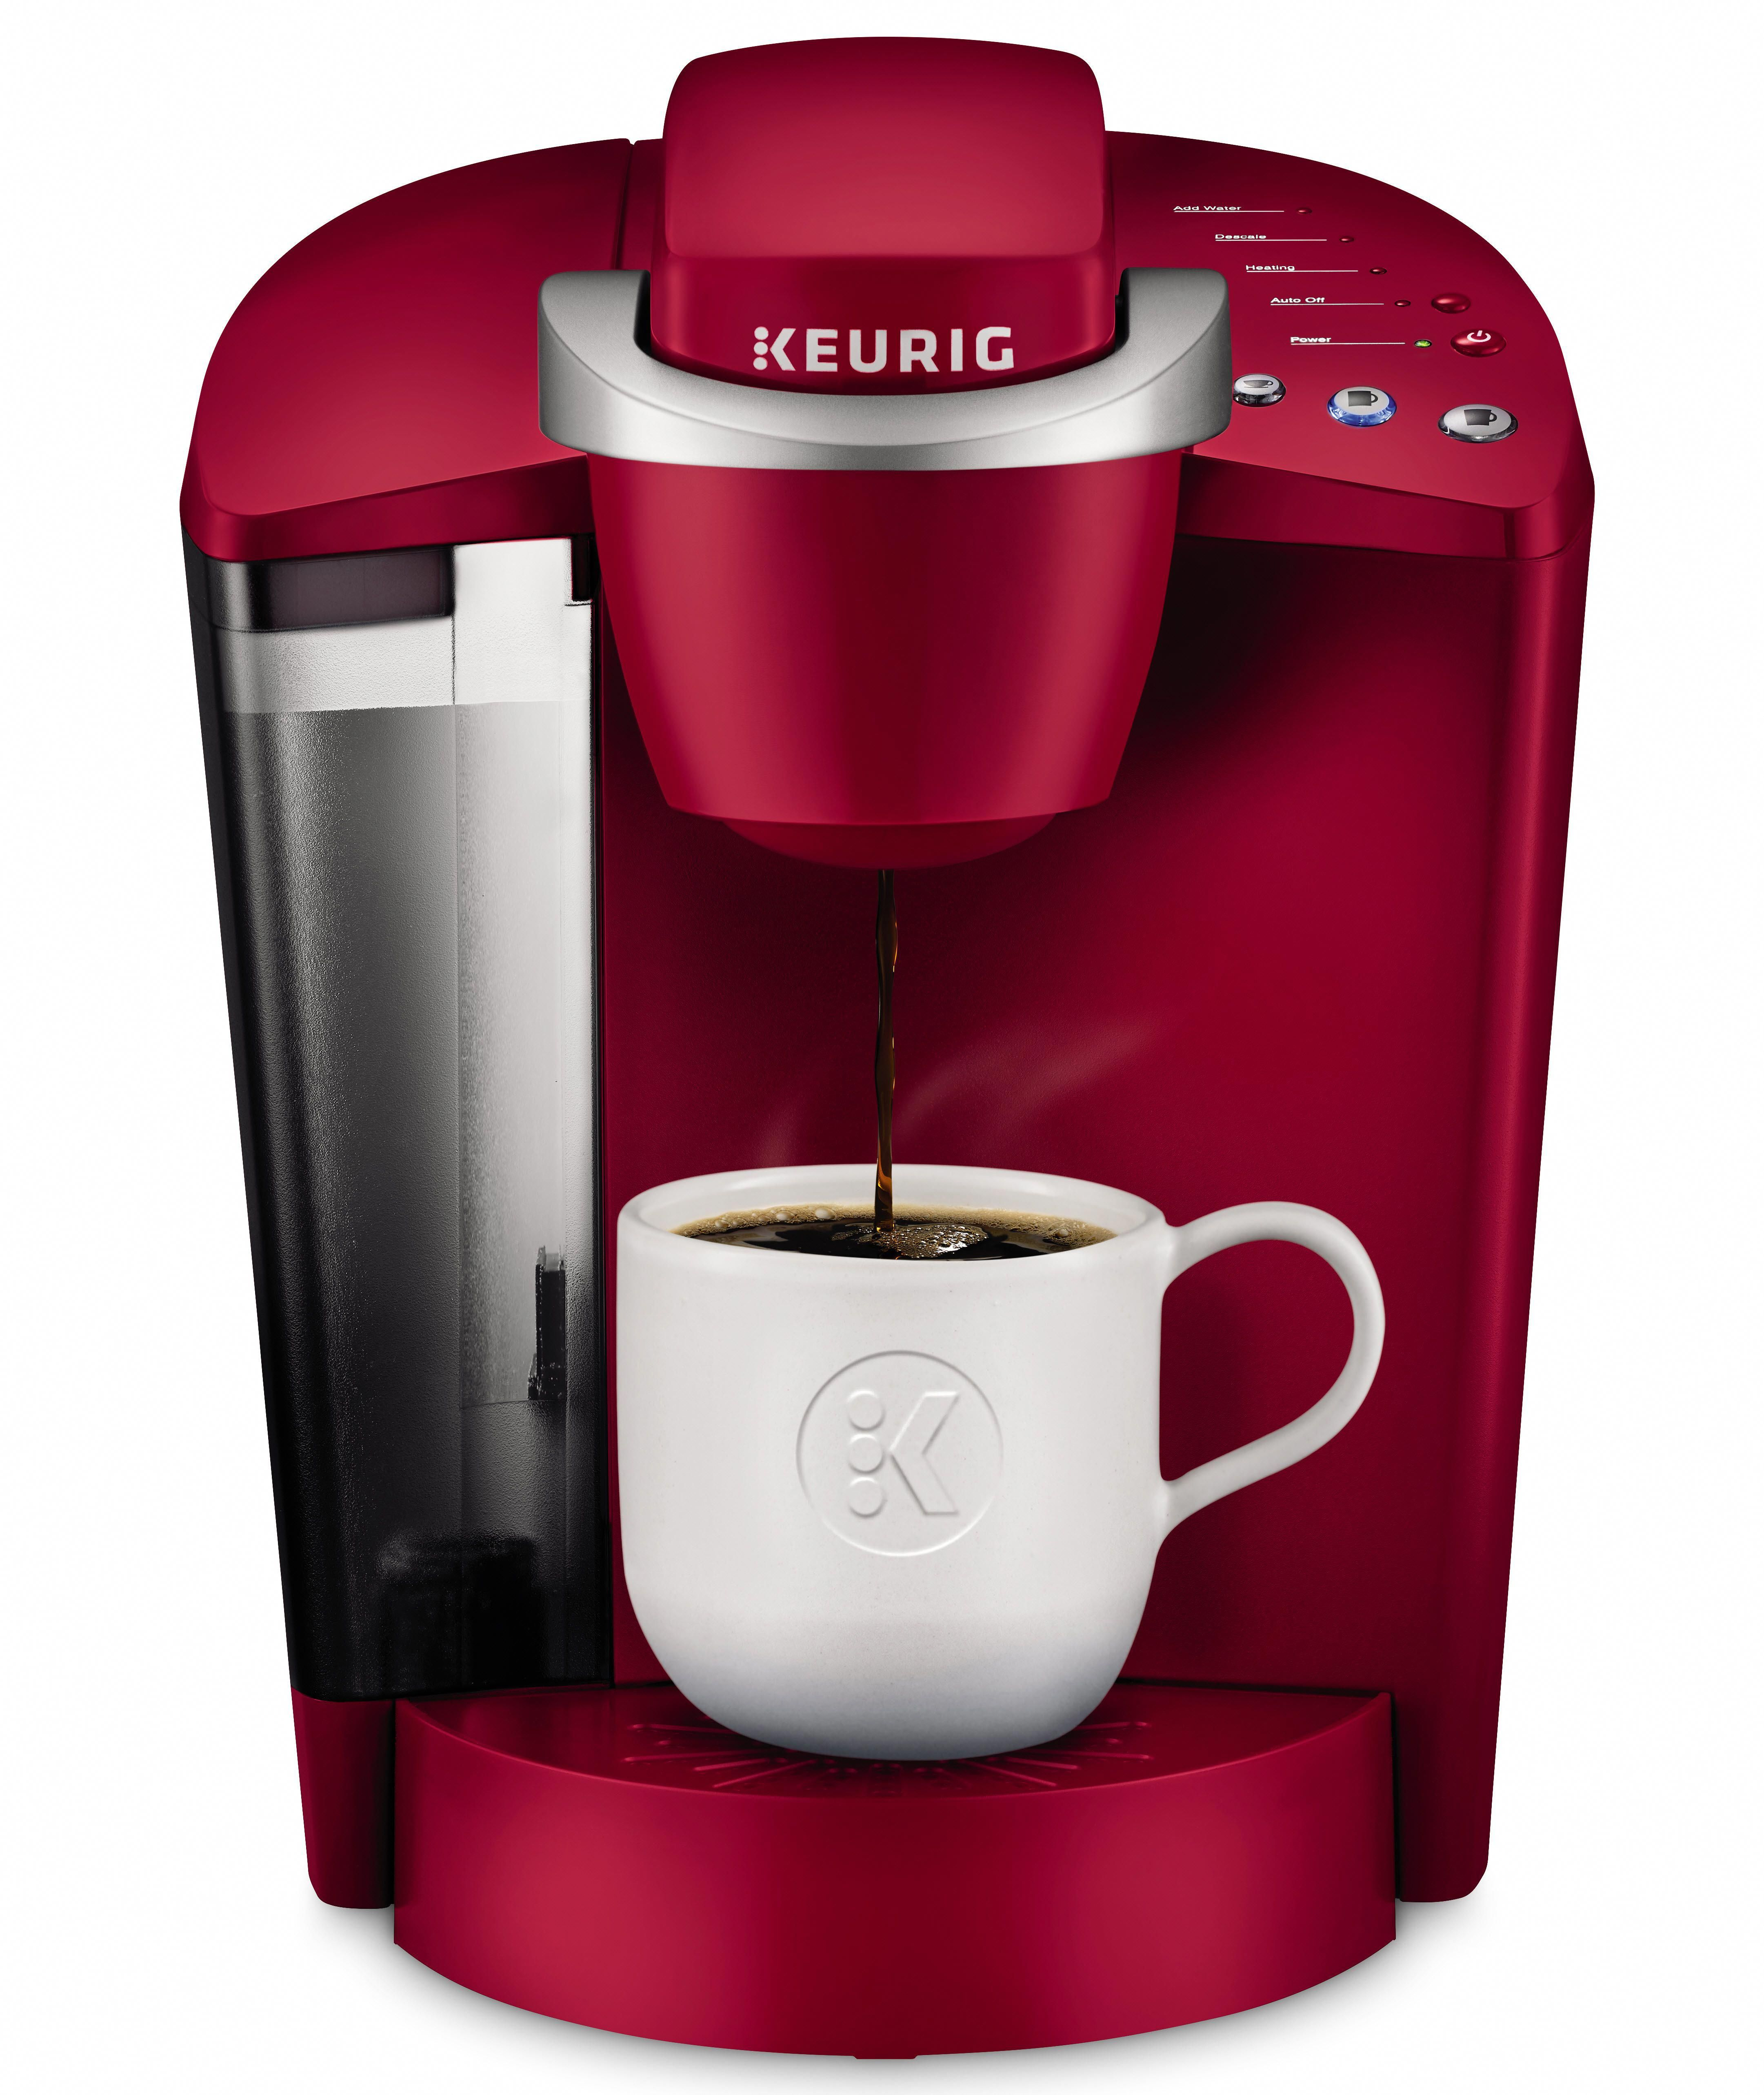 20 Best Coffee Maker And Grinder In One In 2020 Classic Coffee Maker Keurig Coffee Makers K Cup Coffee Maker